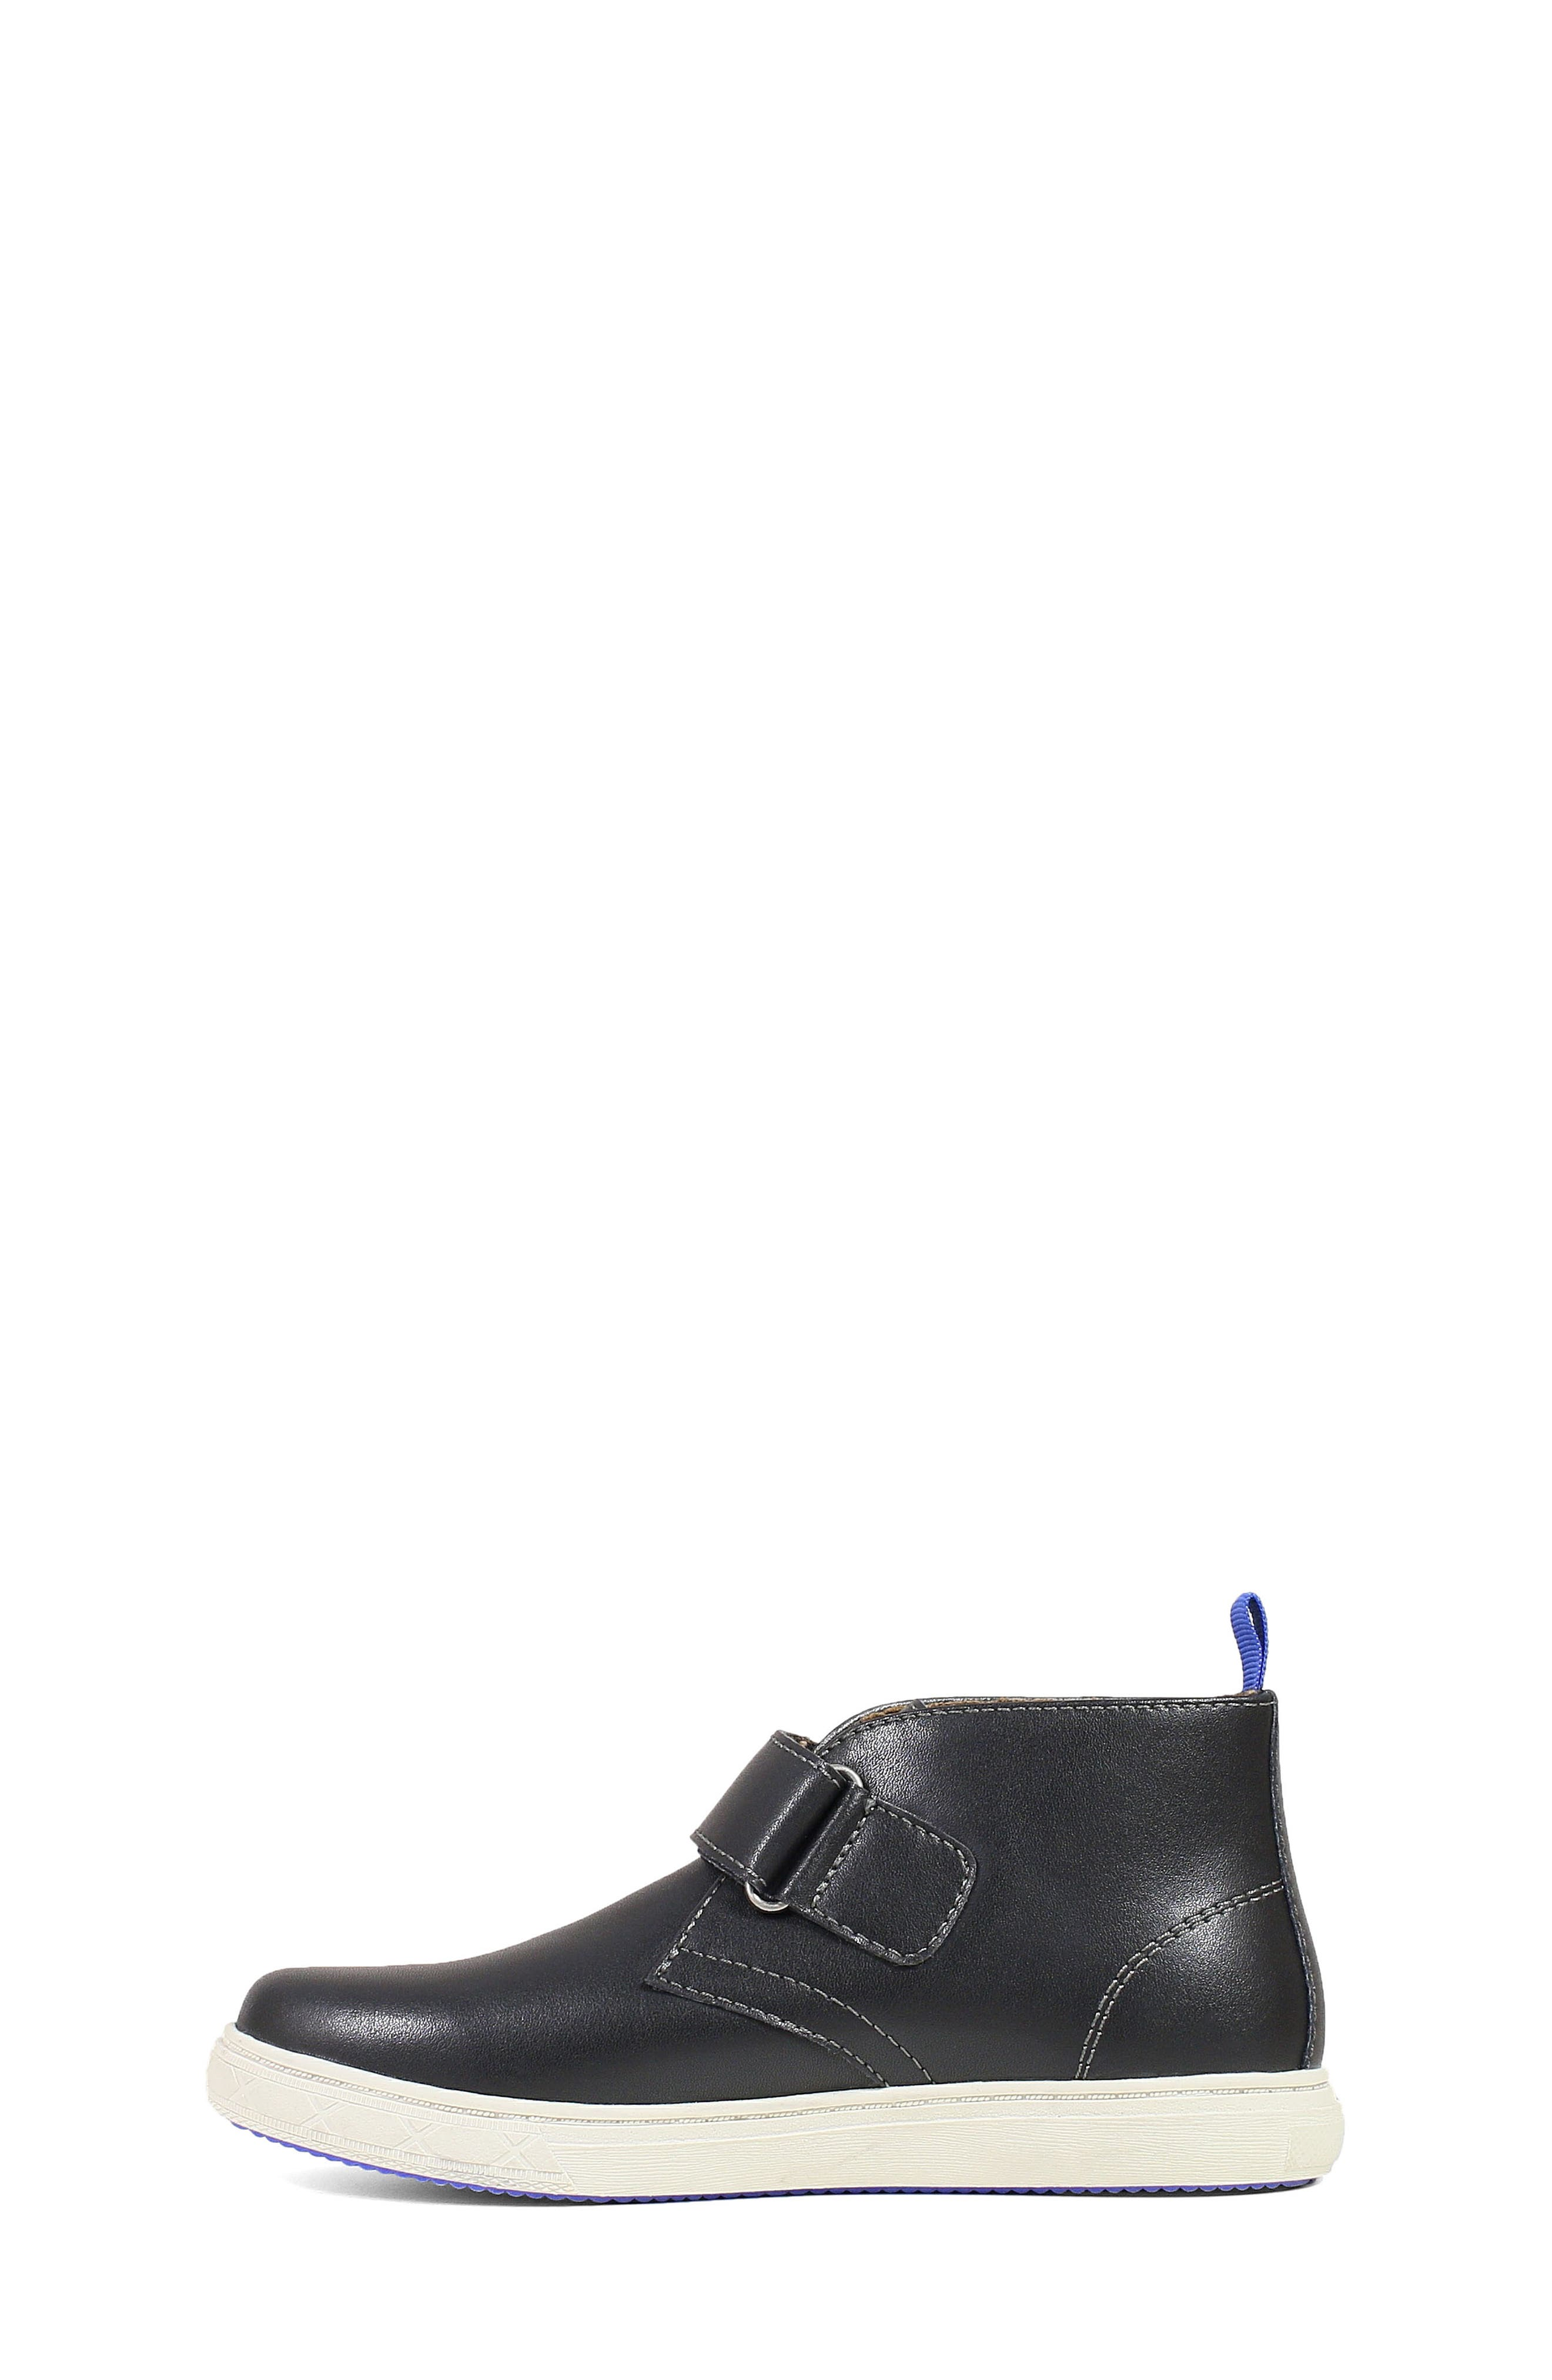 Curb Chukka Boot,                             Alternate thumbnail 3, color,                             BLACK LEATHER